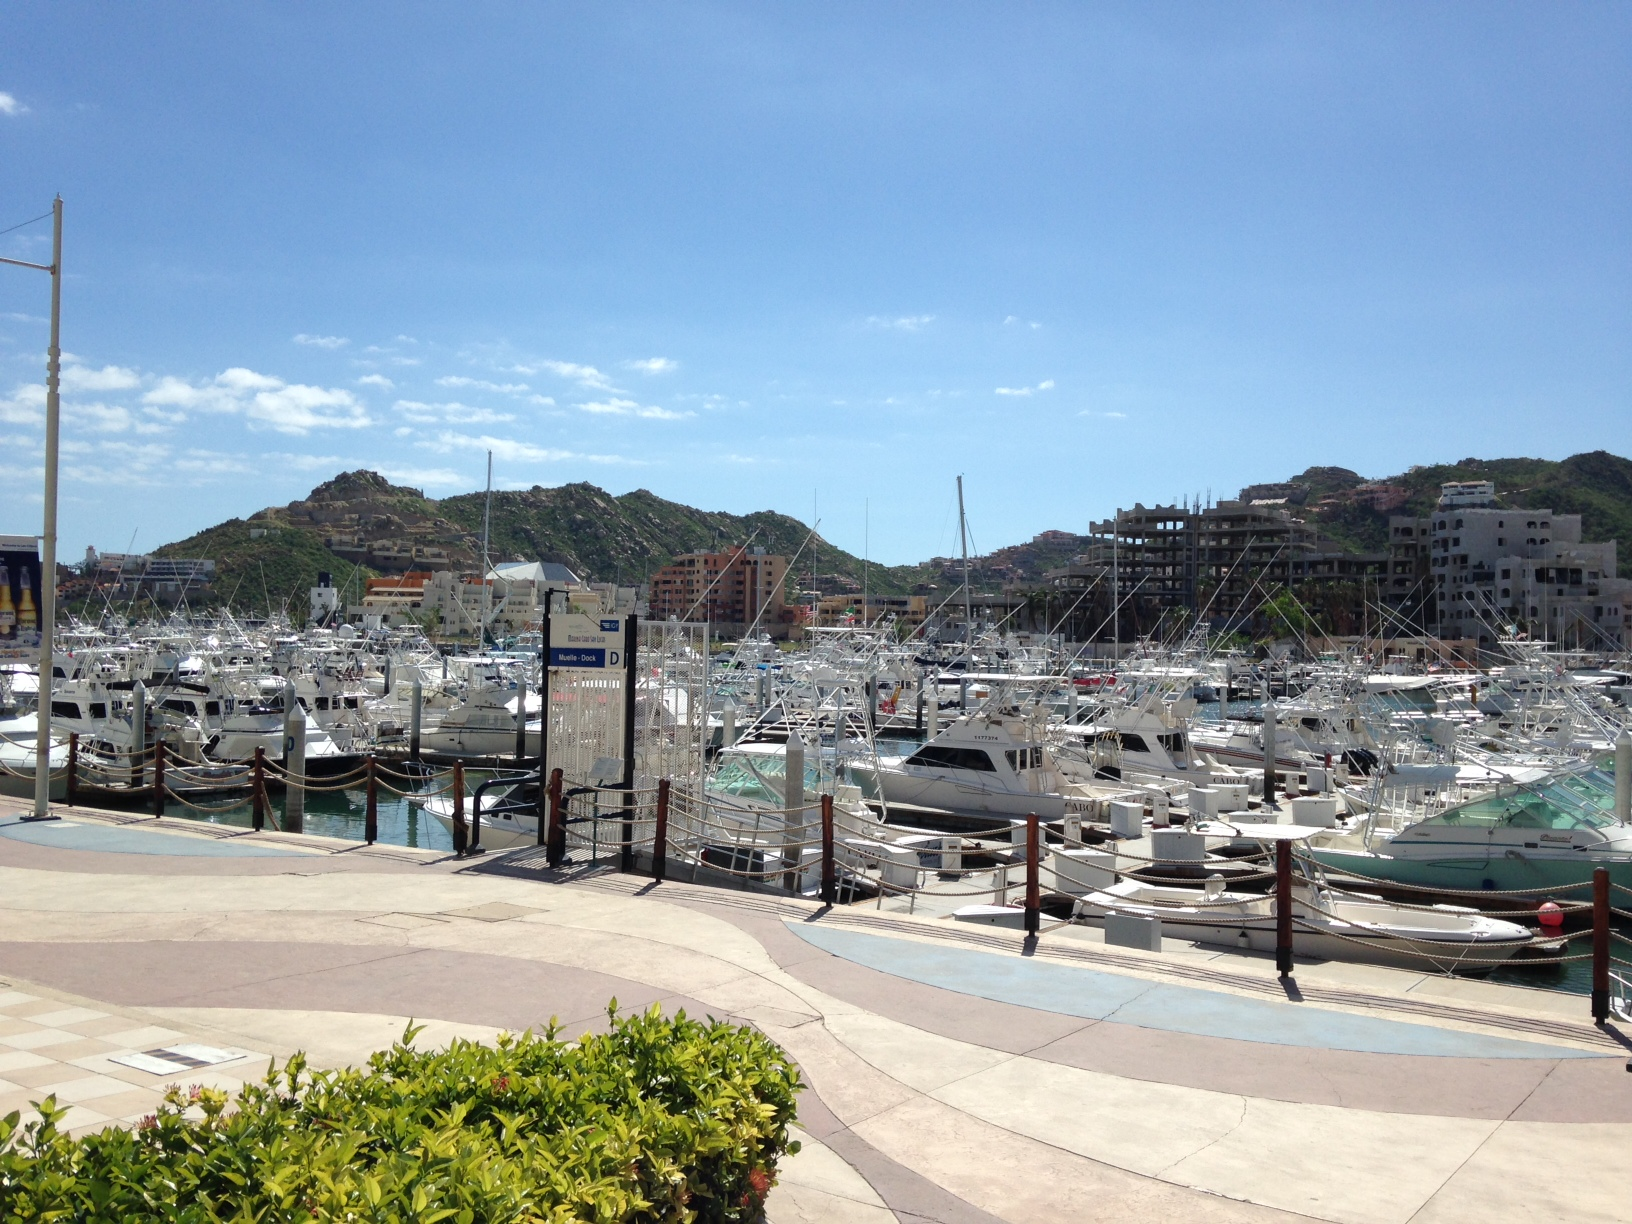 Cabo marina ready for tournament season after Odile